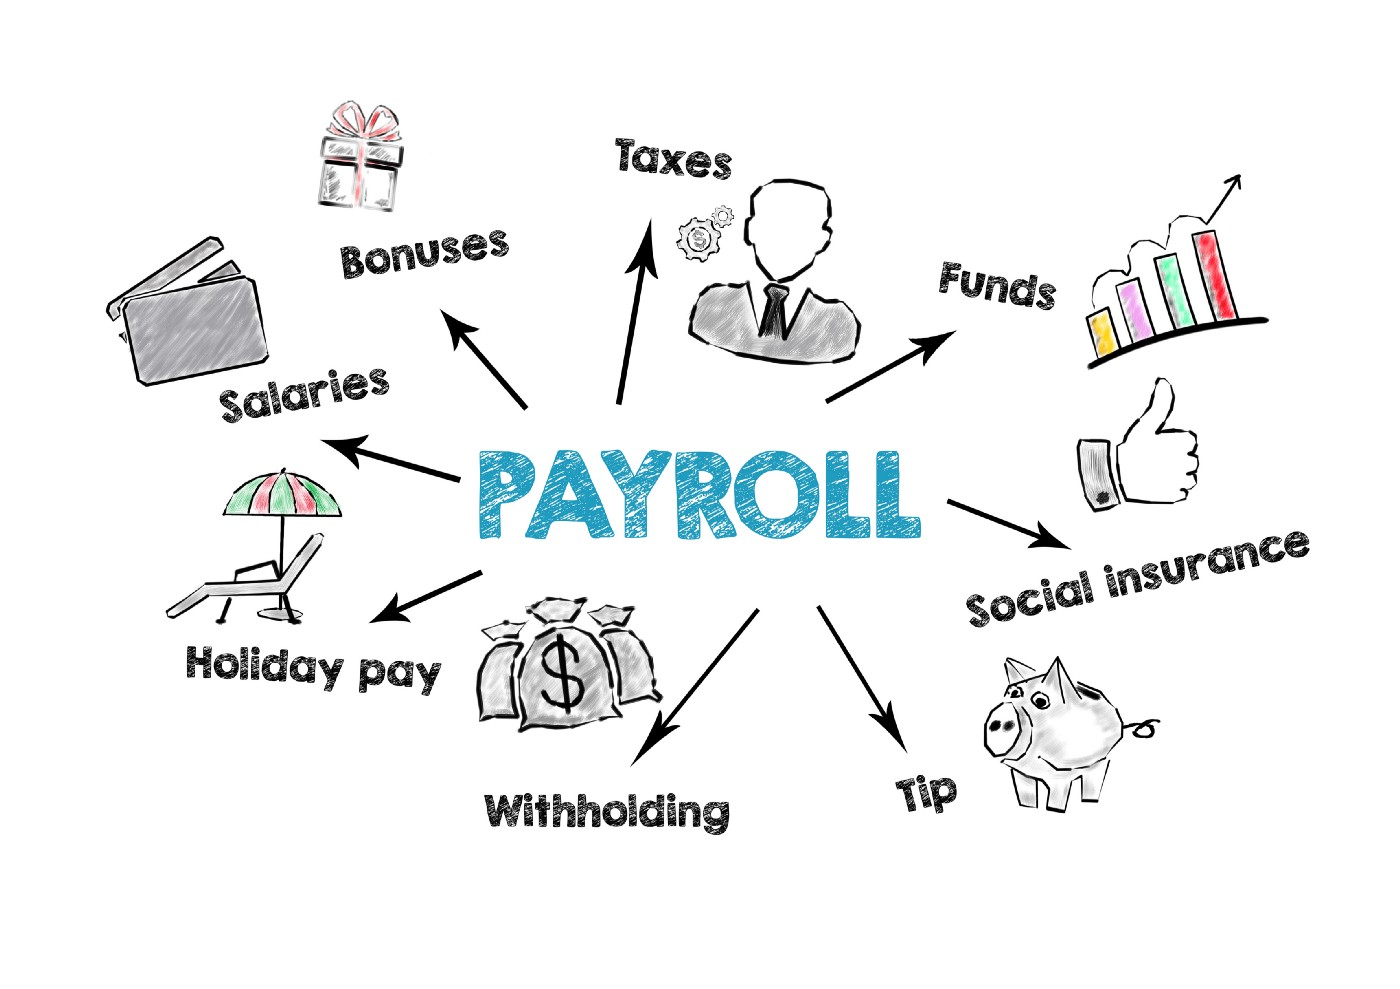 Word/image cloud w/ Payroll in the center. Taxes bonuses salaries holiday pay withholding tips social security also mentioned